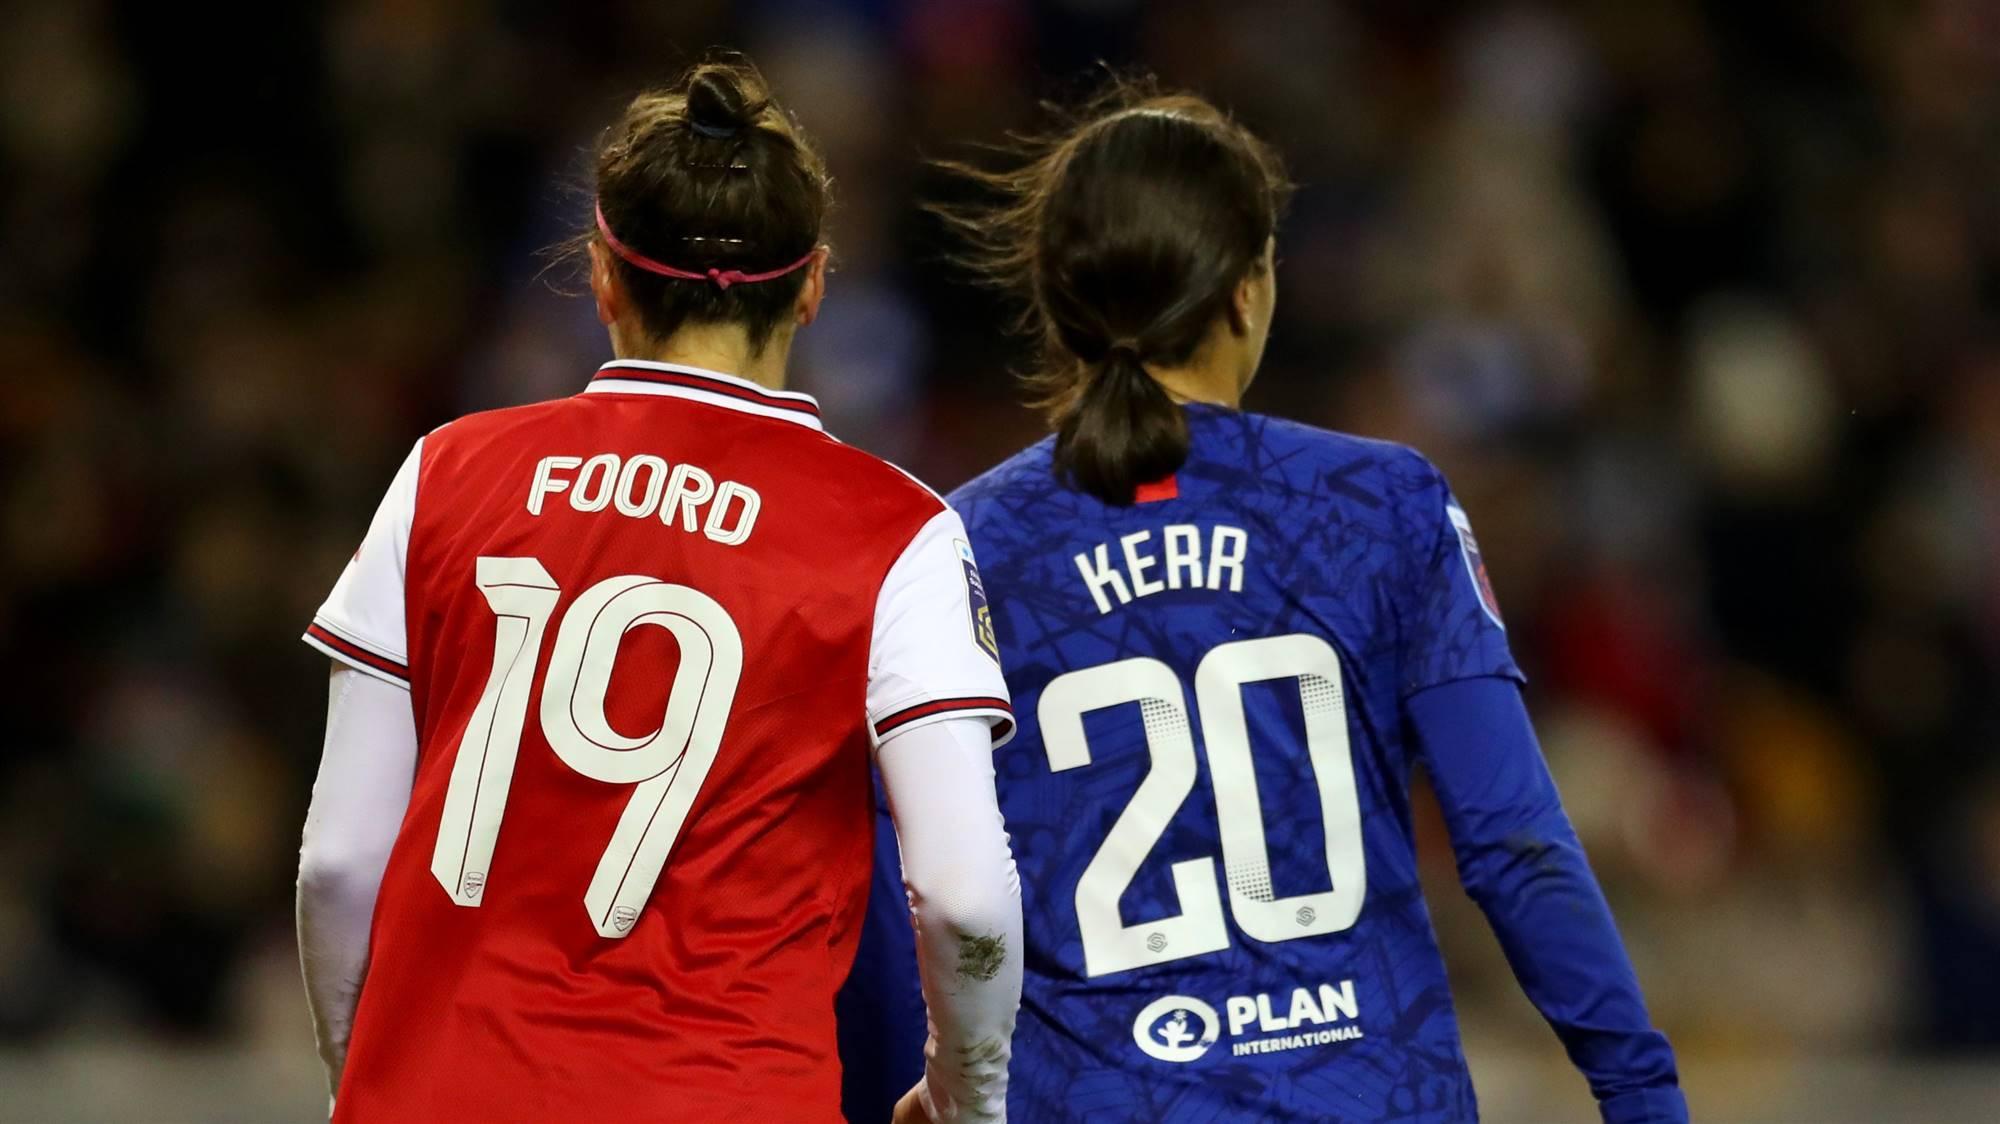 OP: Kerr's agent wants WSL finished. How and why should it end?